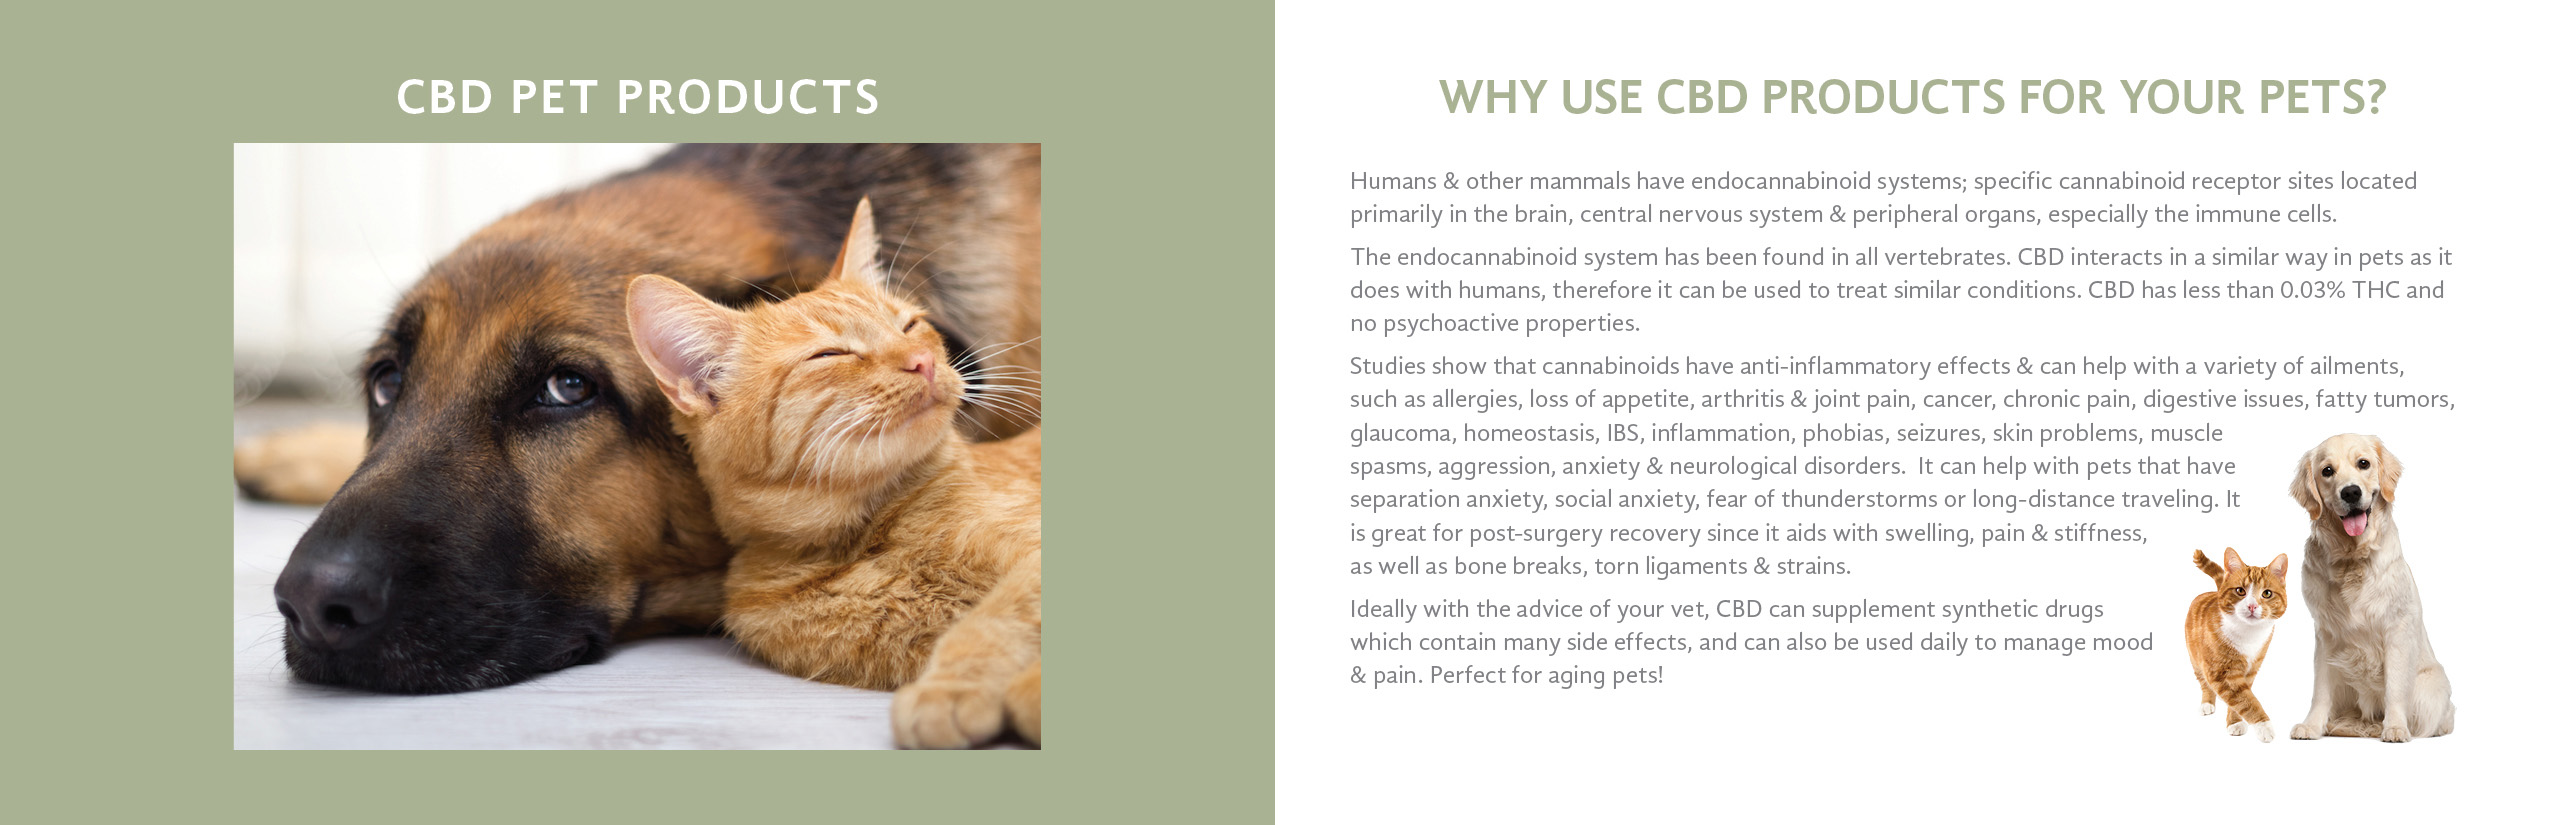 Hemp Cbd Oil for Pets in Charlottetown PEI